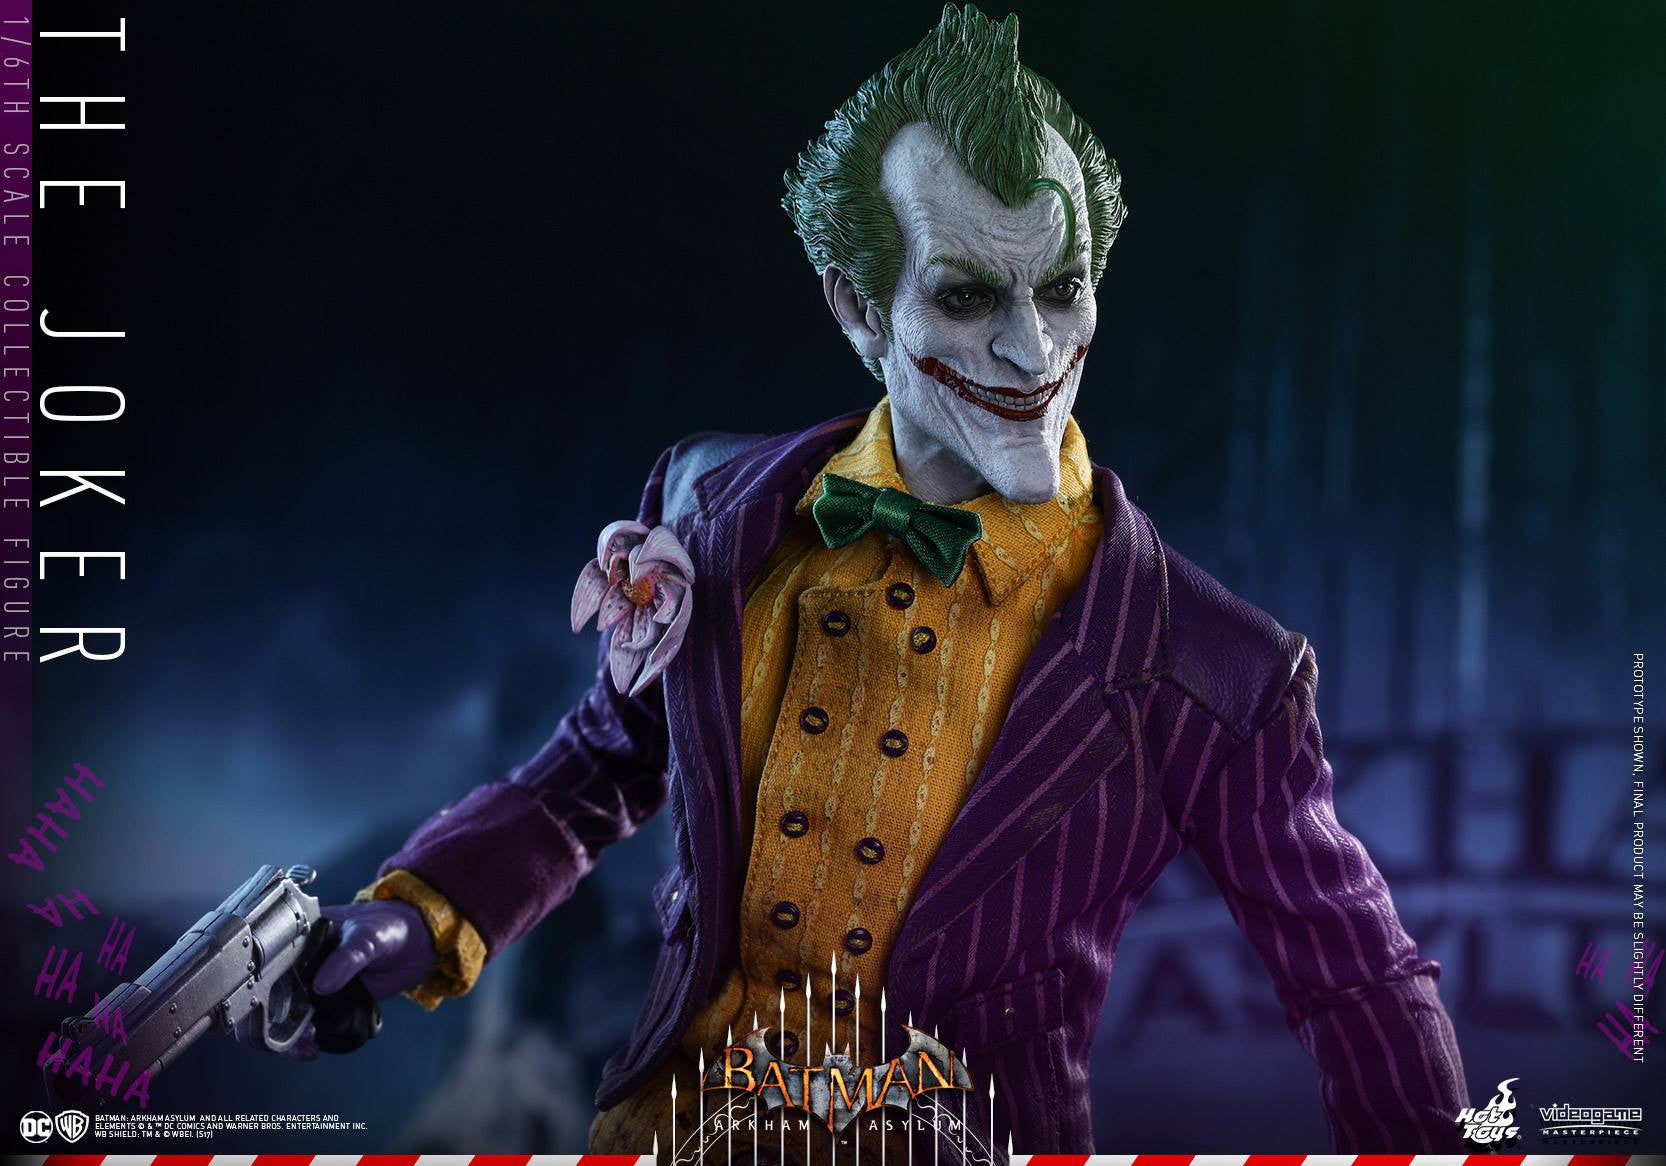 Hot Toys - VGM27 - Batman: Arkham Asylum - The Joker - Marvelous Toys - 17